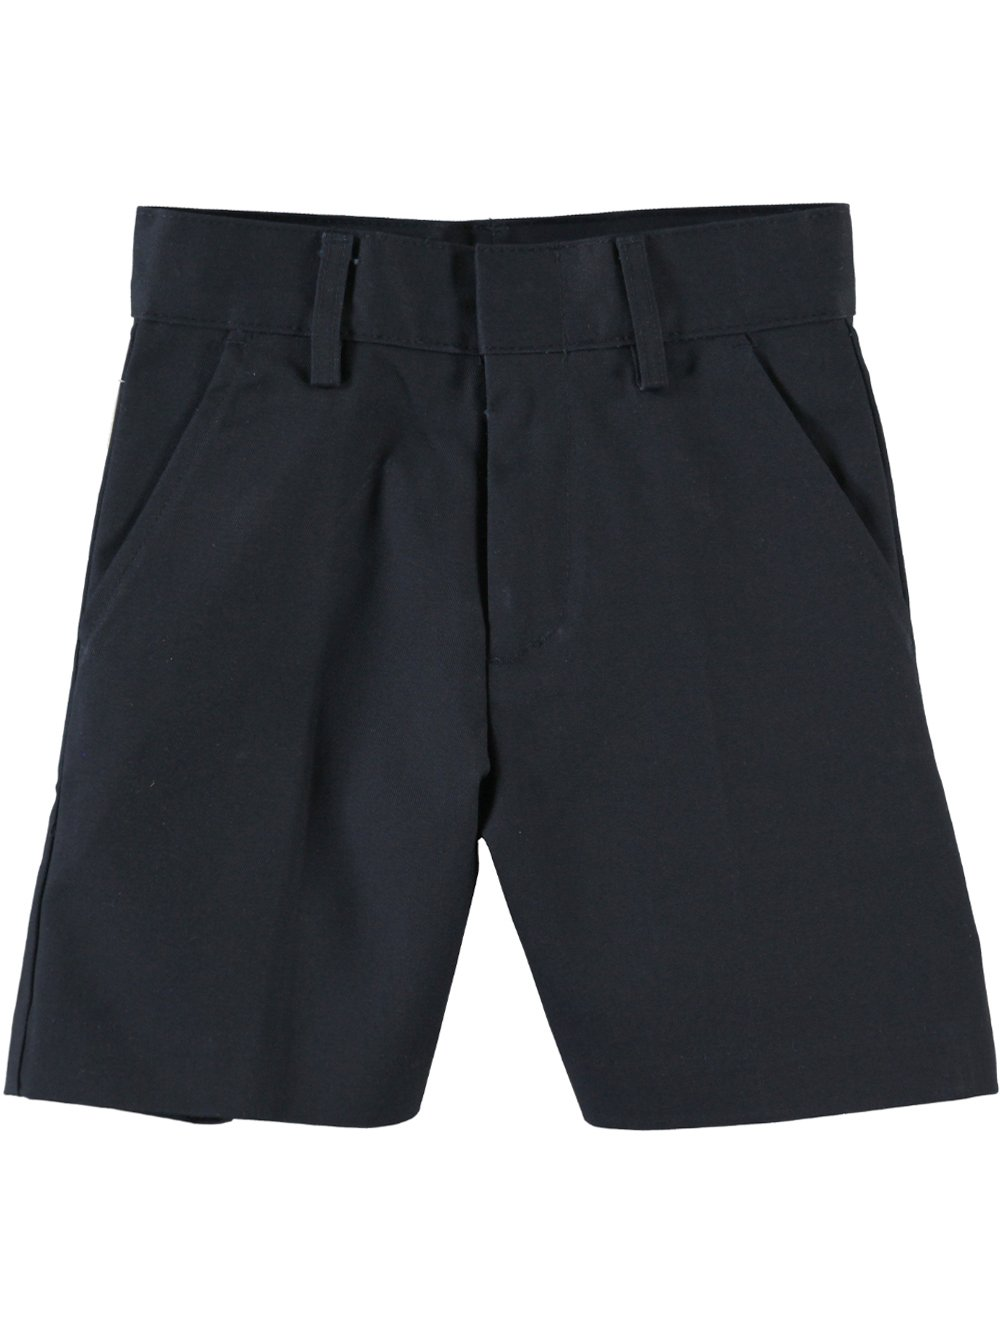 Cookie's Kids Universal Flat Front Unisex Shorts